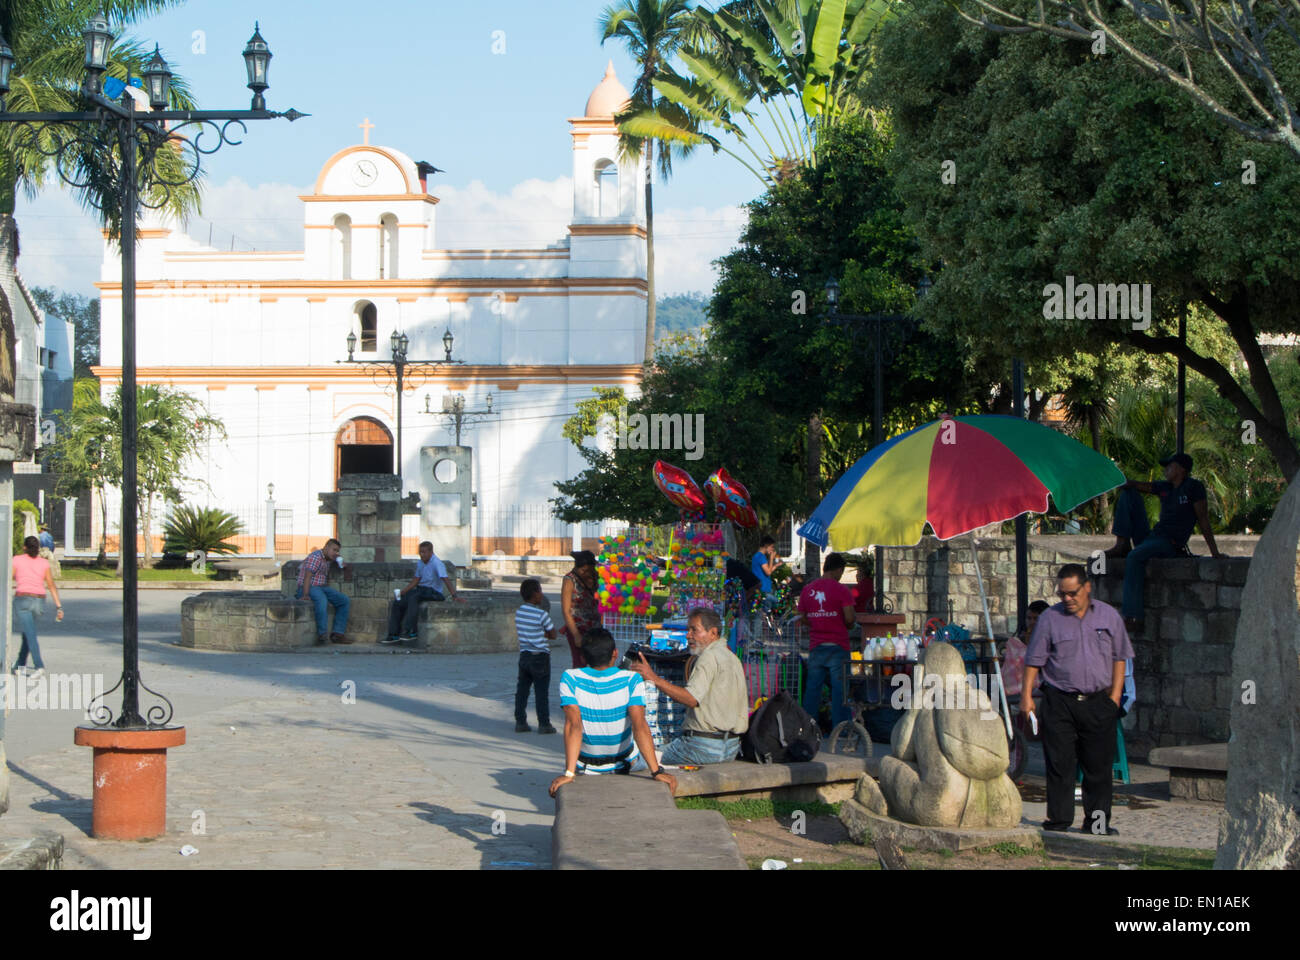 Central square in the town of Copan Ruinas, Honduras - Stock Image